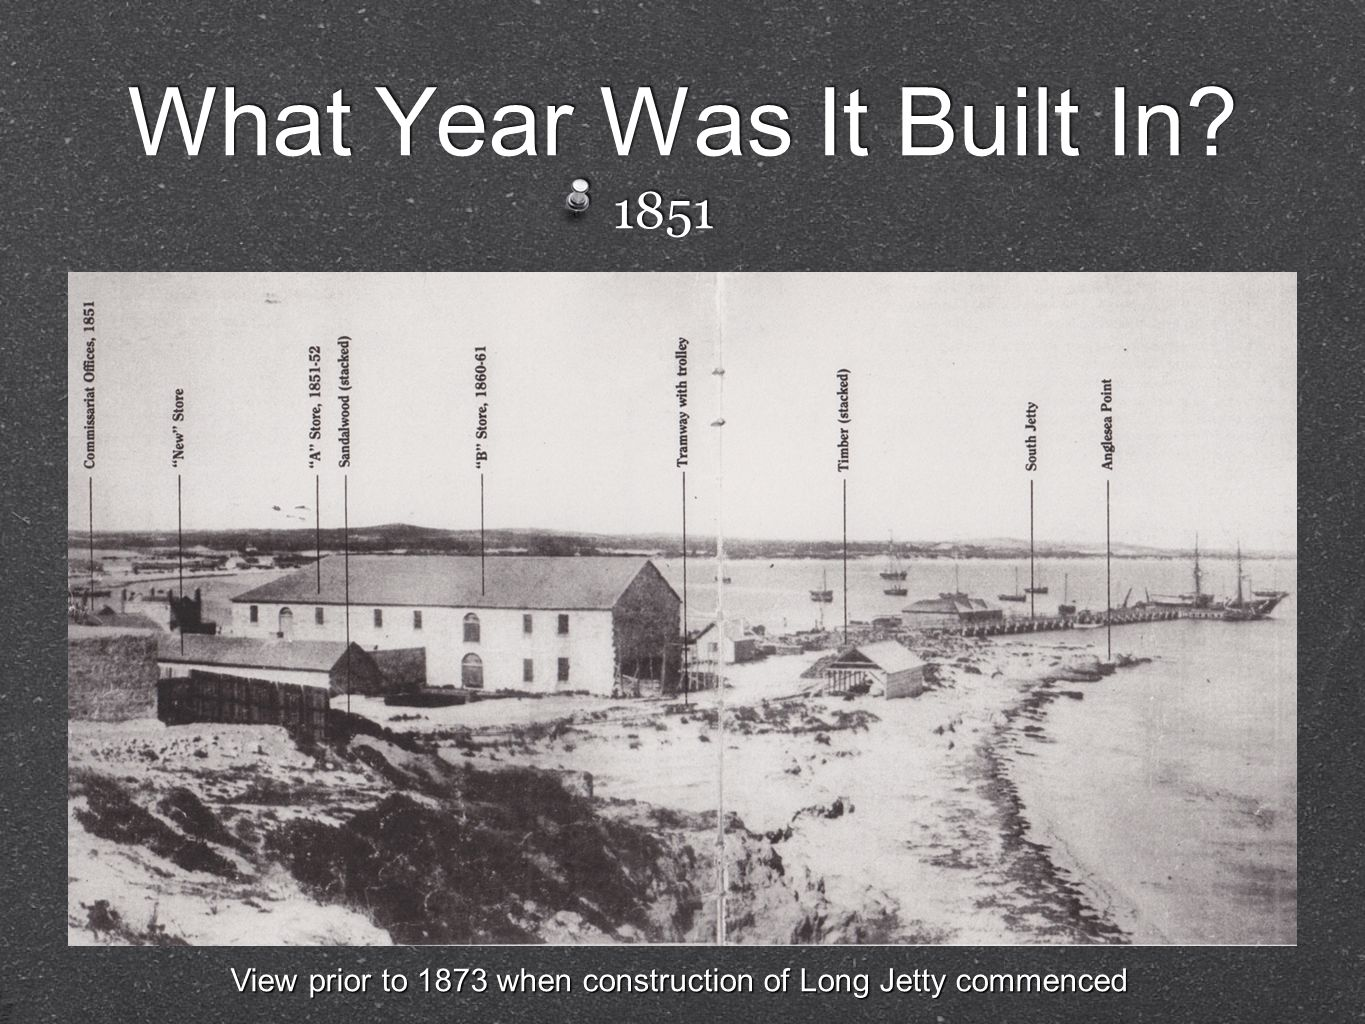 What Year Was It Built In 1851 View prior to 1873 when construction of Long Jetty commenced